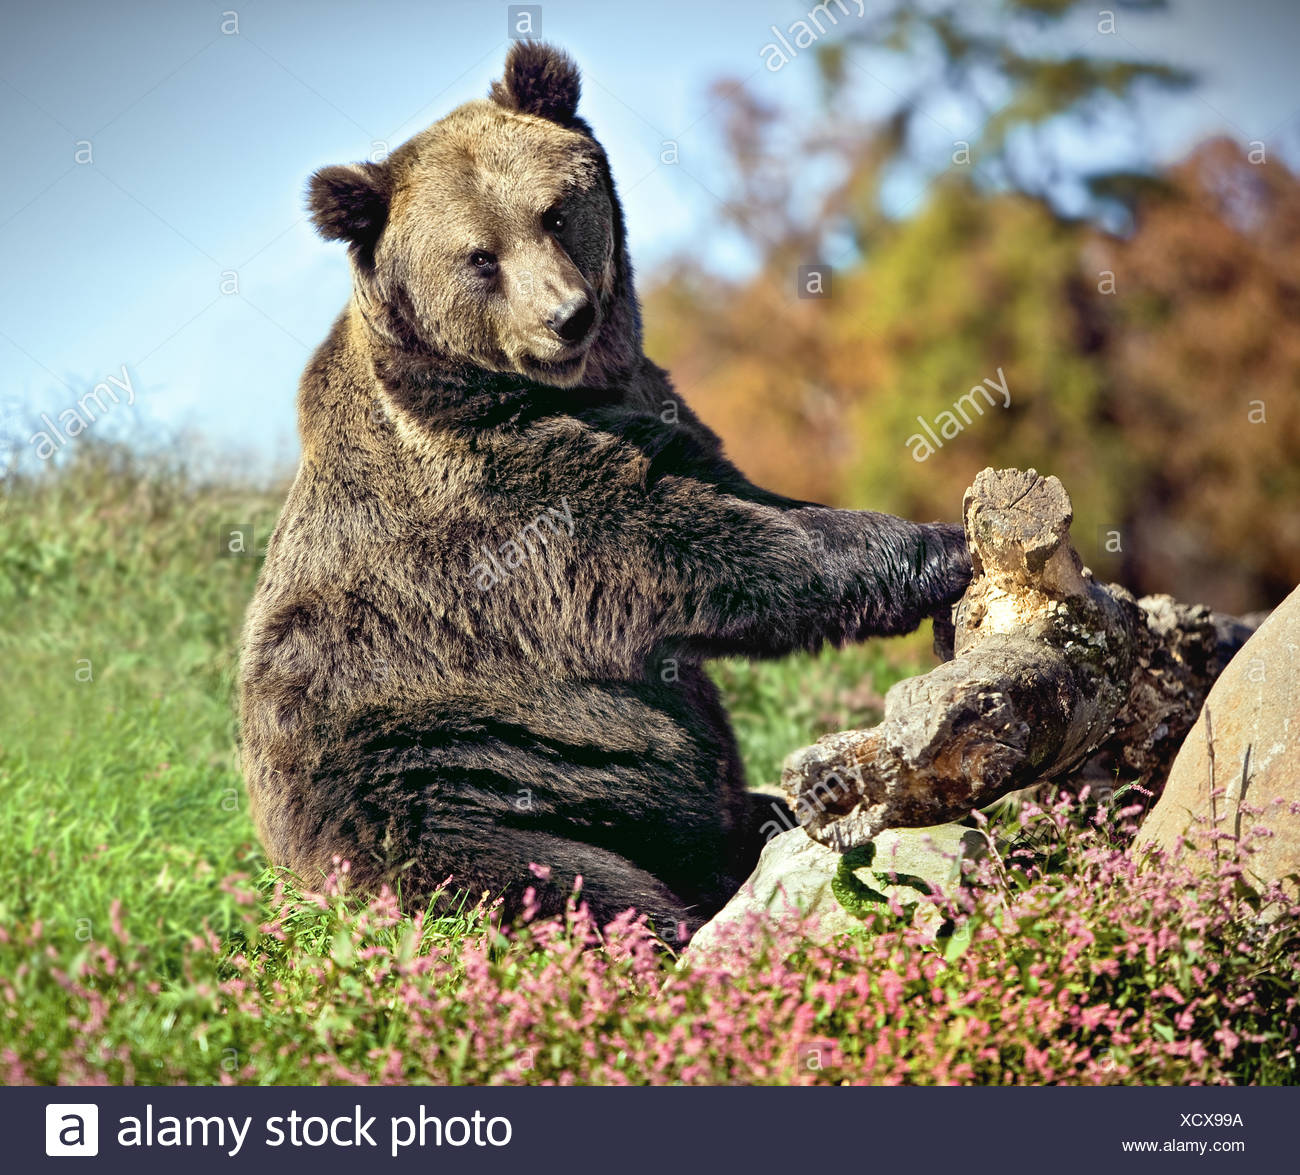 LARGE GRIZZLY BEAR SITTING ON GRASS WITH CUTE EXPRESSION - Stock Image